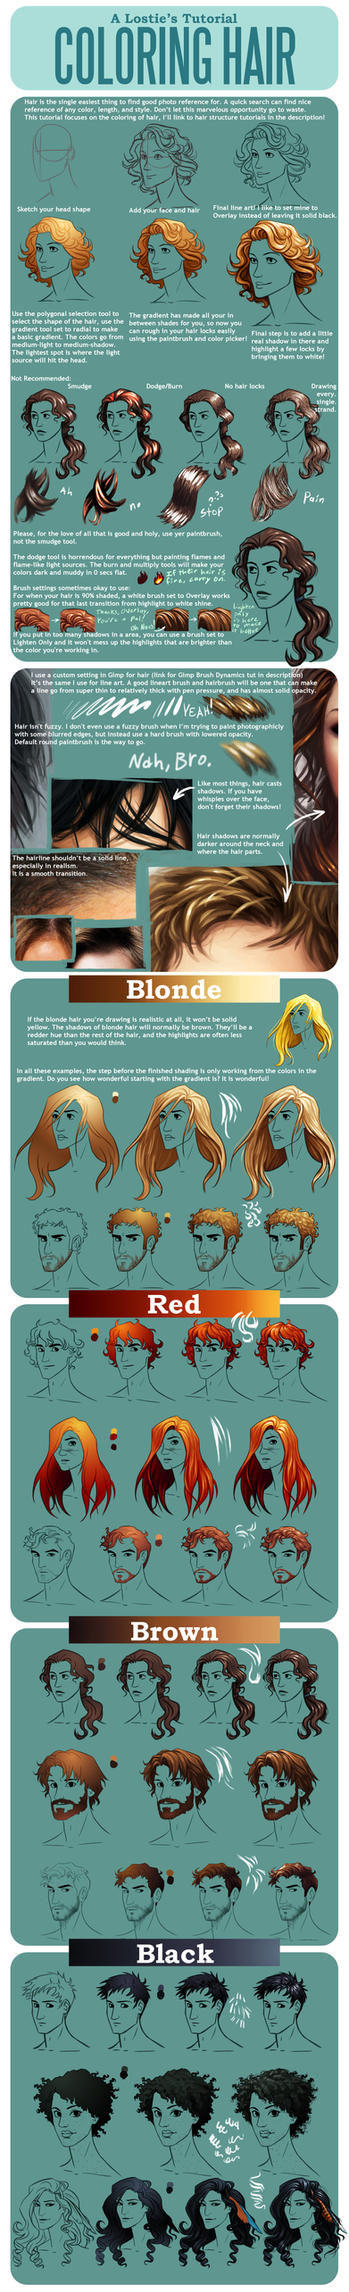 Hair Coloring Tutorial by LauraHollingsworth